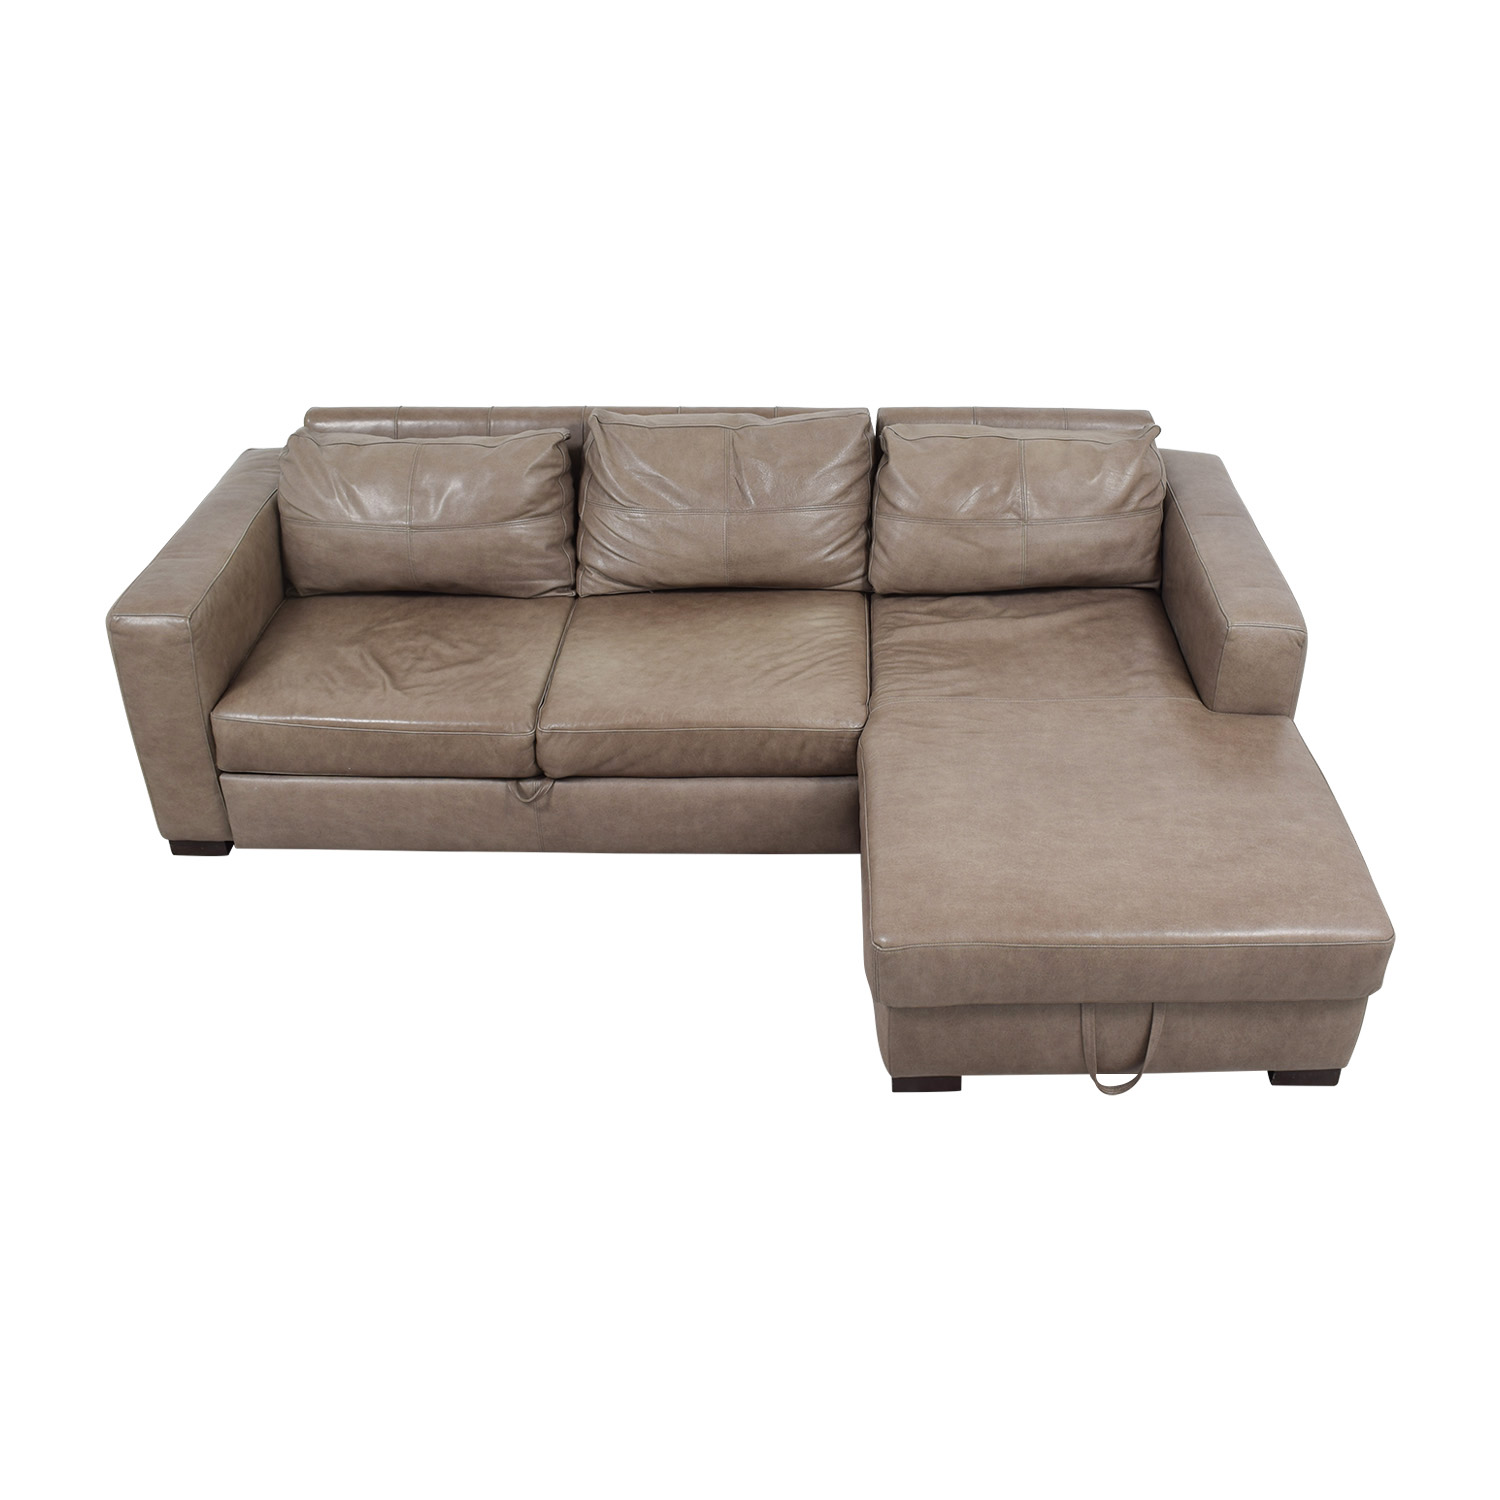 81% OFF - Arhaus Arhaus Grey Soft Leather Convertible Sleeper Sofa ...